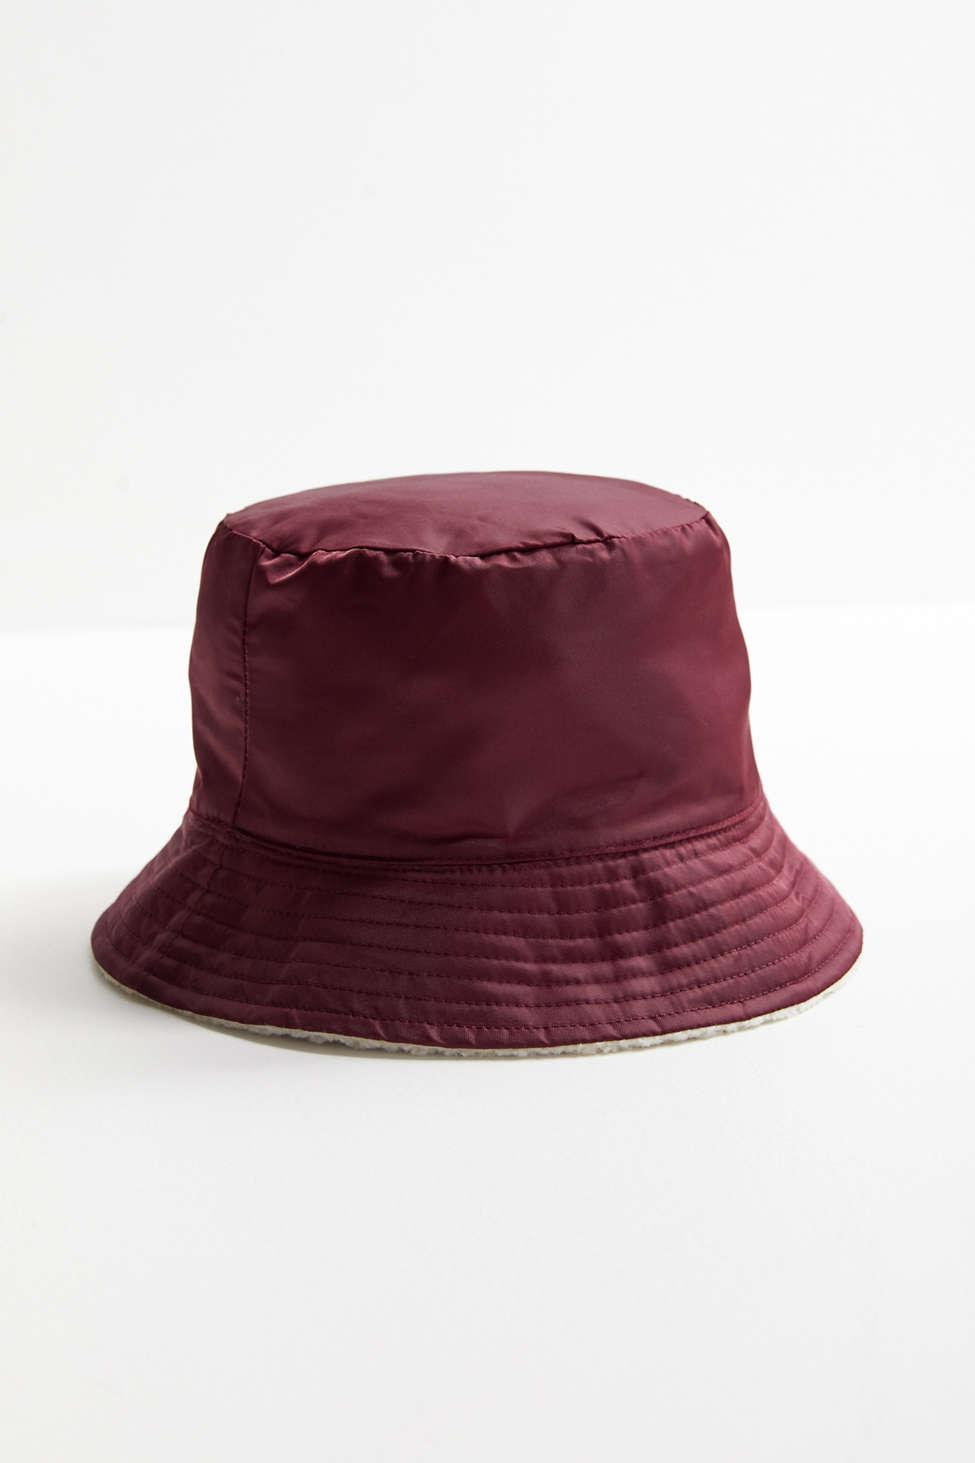 Urban Outfitters - Red Nylon + Sherpa Reversible Burgundy Bucket Hat -  Lyst. View fullscreen a0868440d339